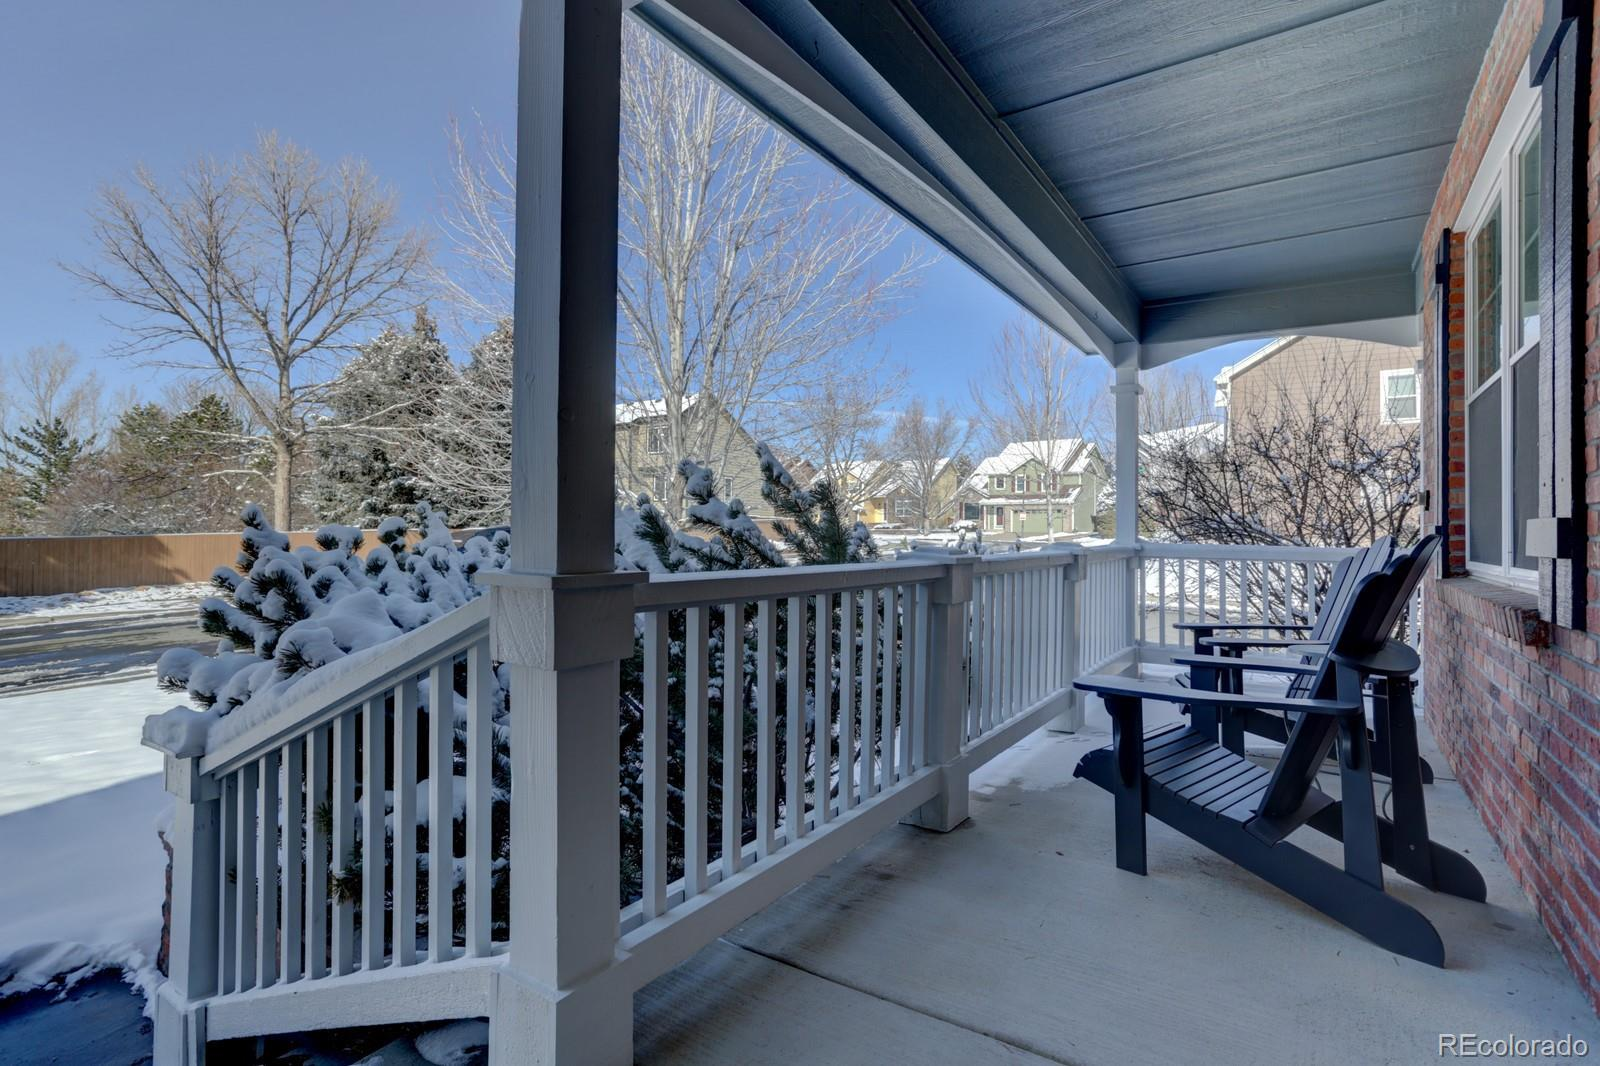 MLS# 5985159 - 3 - 9991 Spring Hill Place, Highlands Ranch, CO 80129